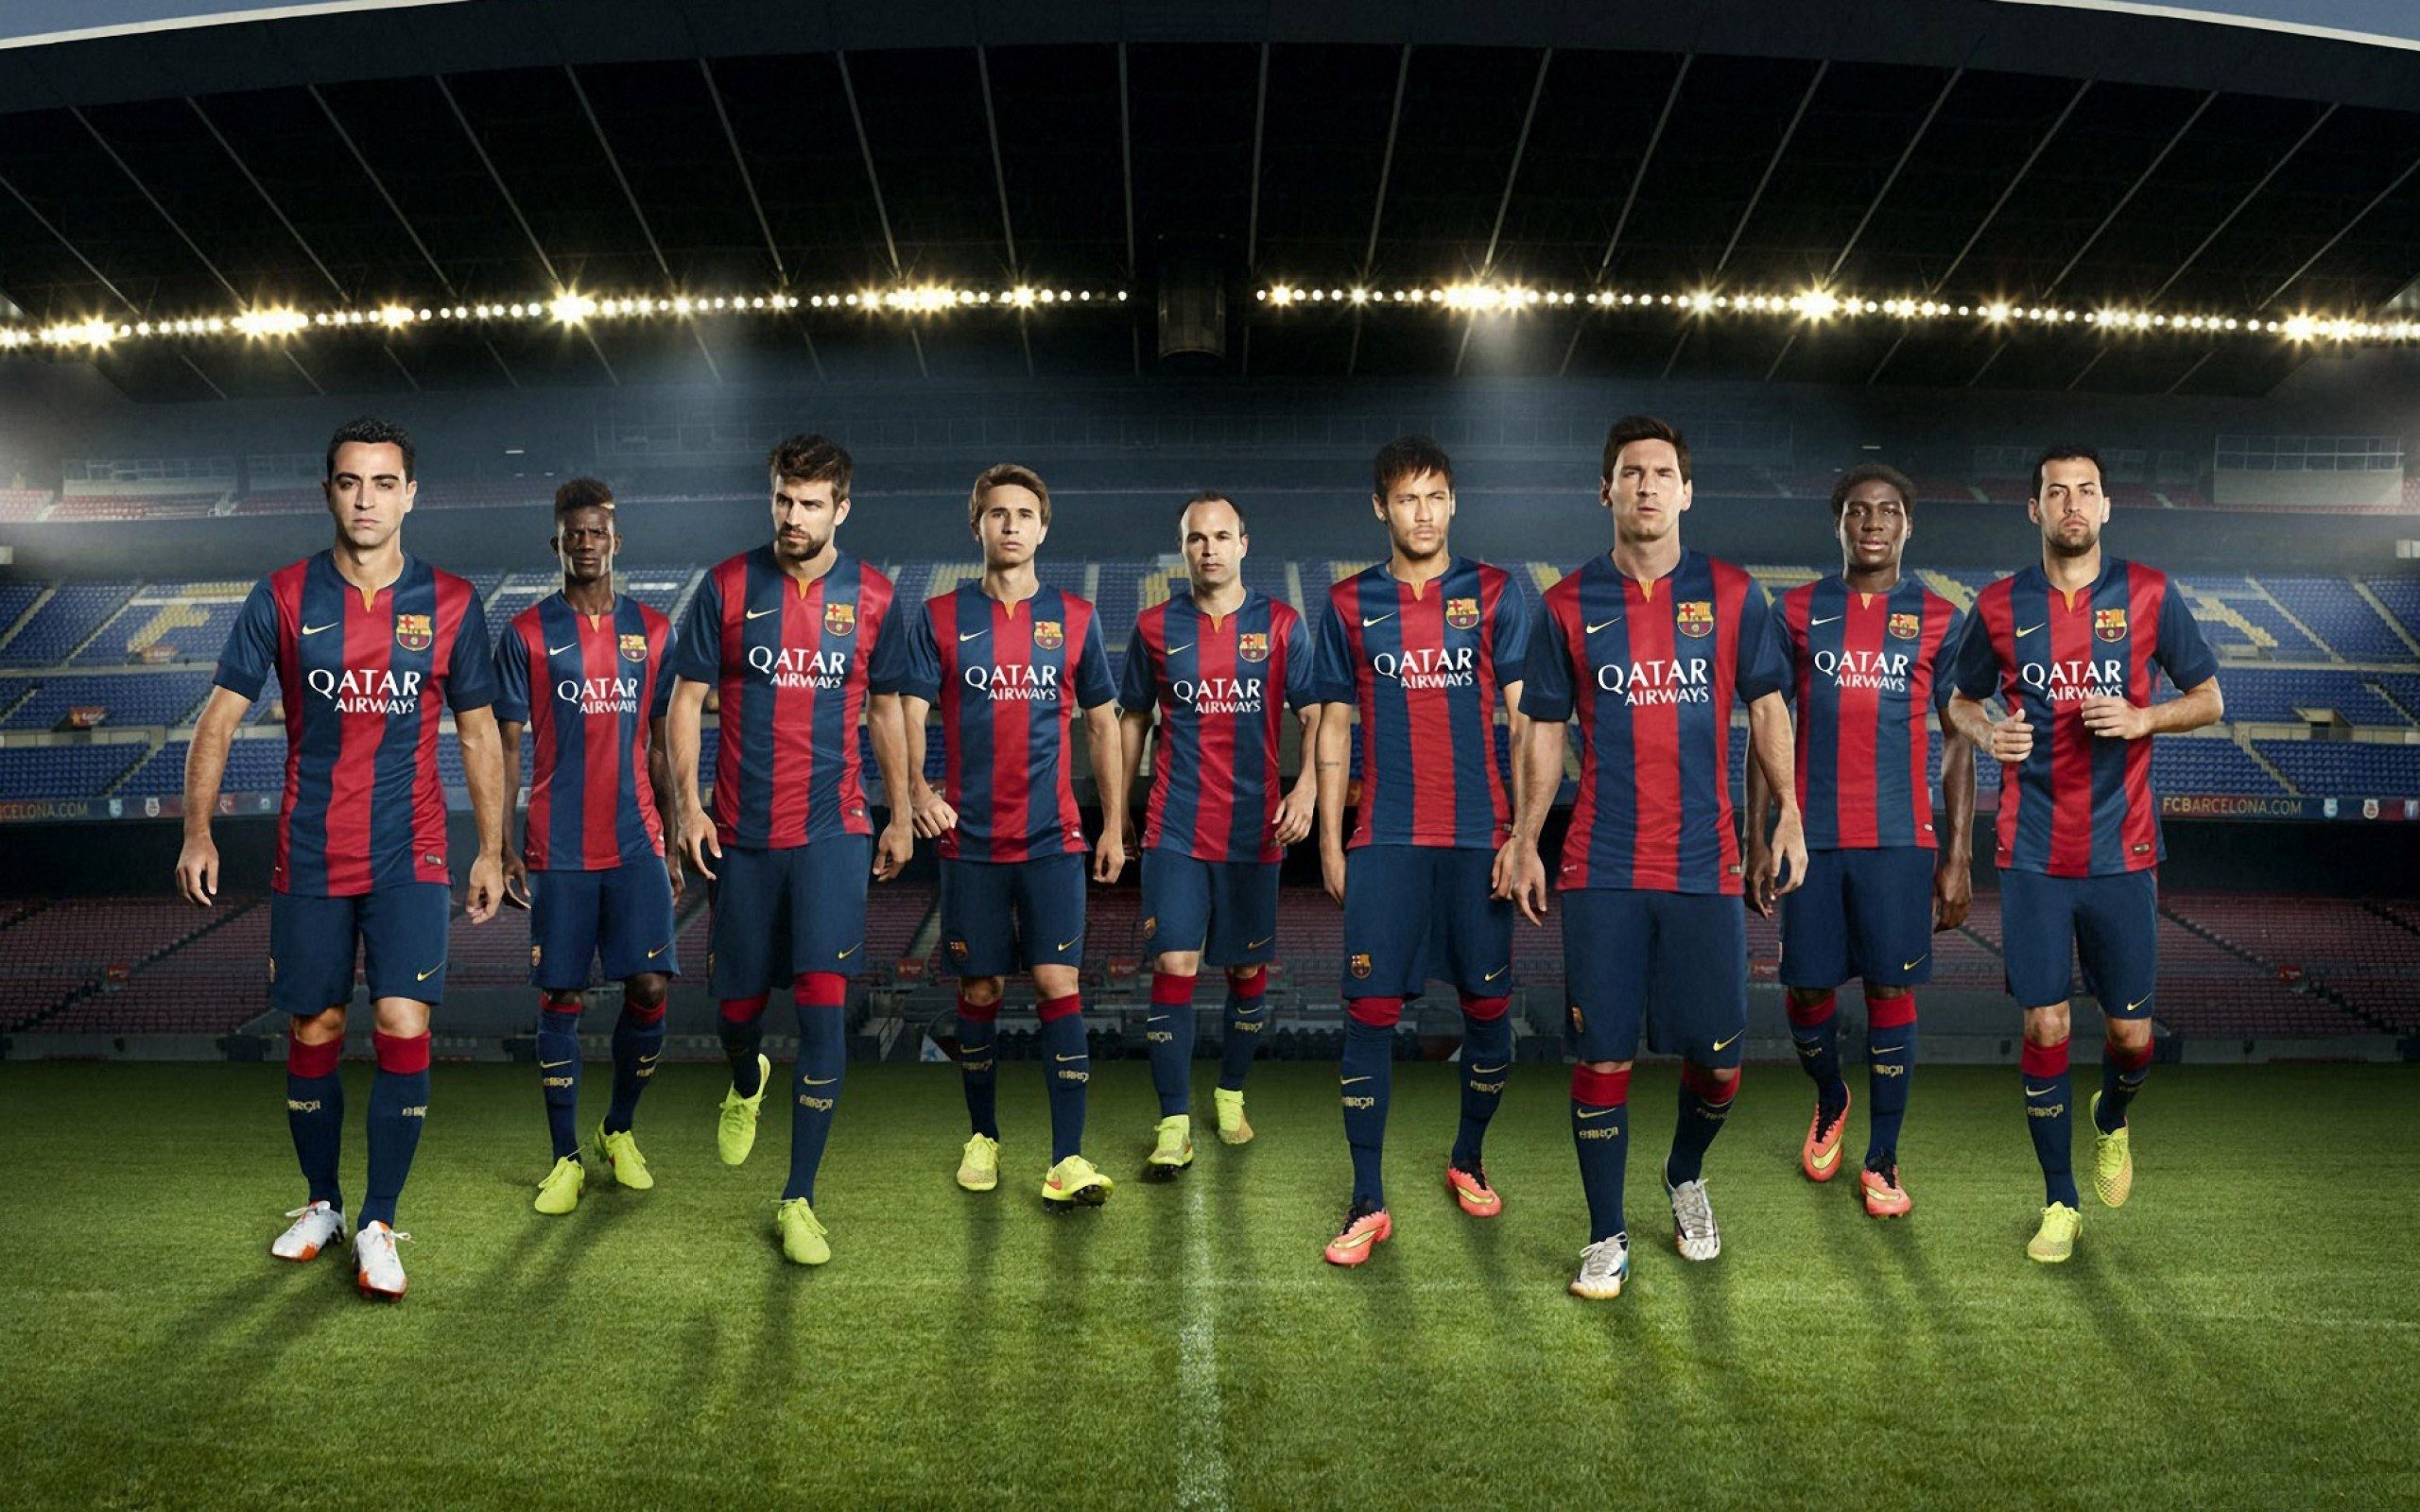 HD Wallpapers Football Club FC barcelona images new nike home kit.